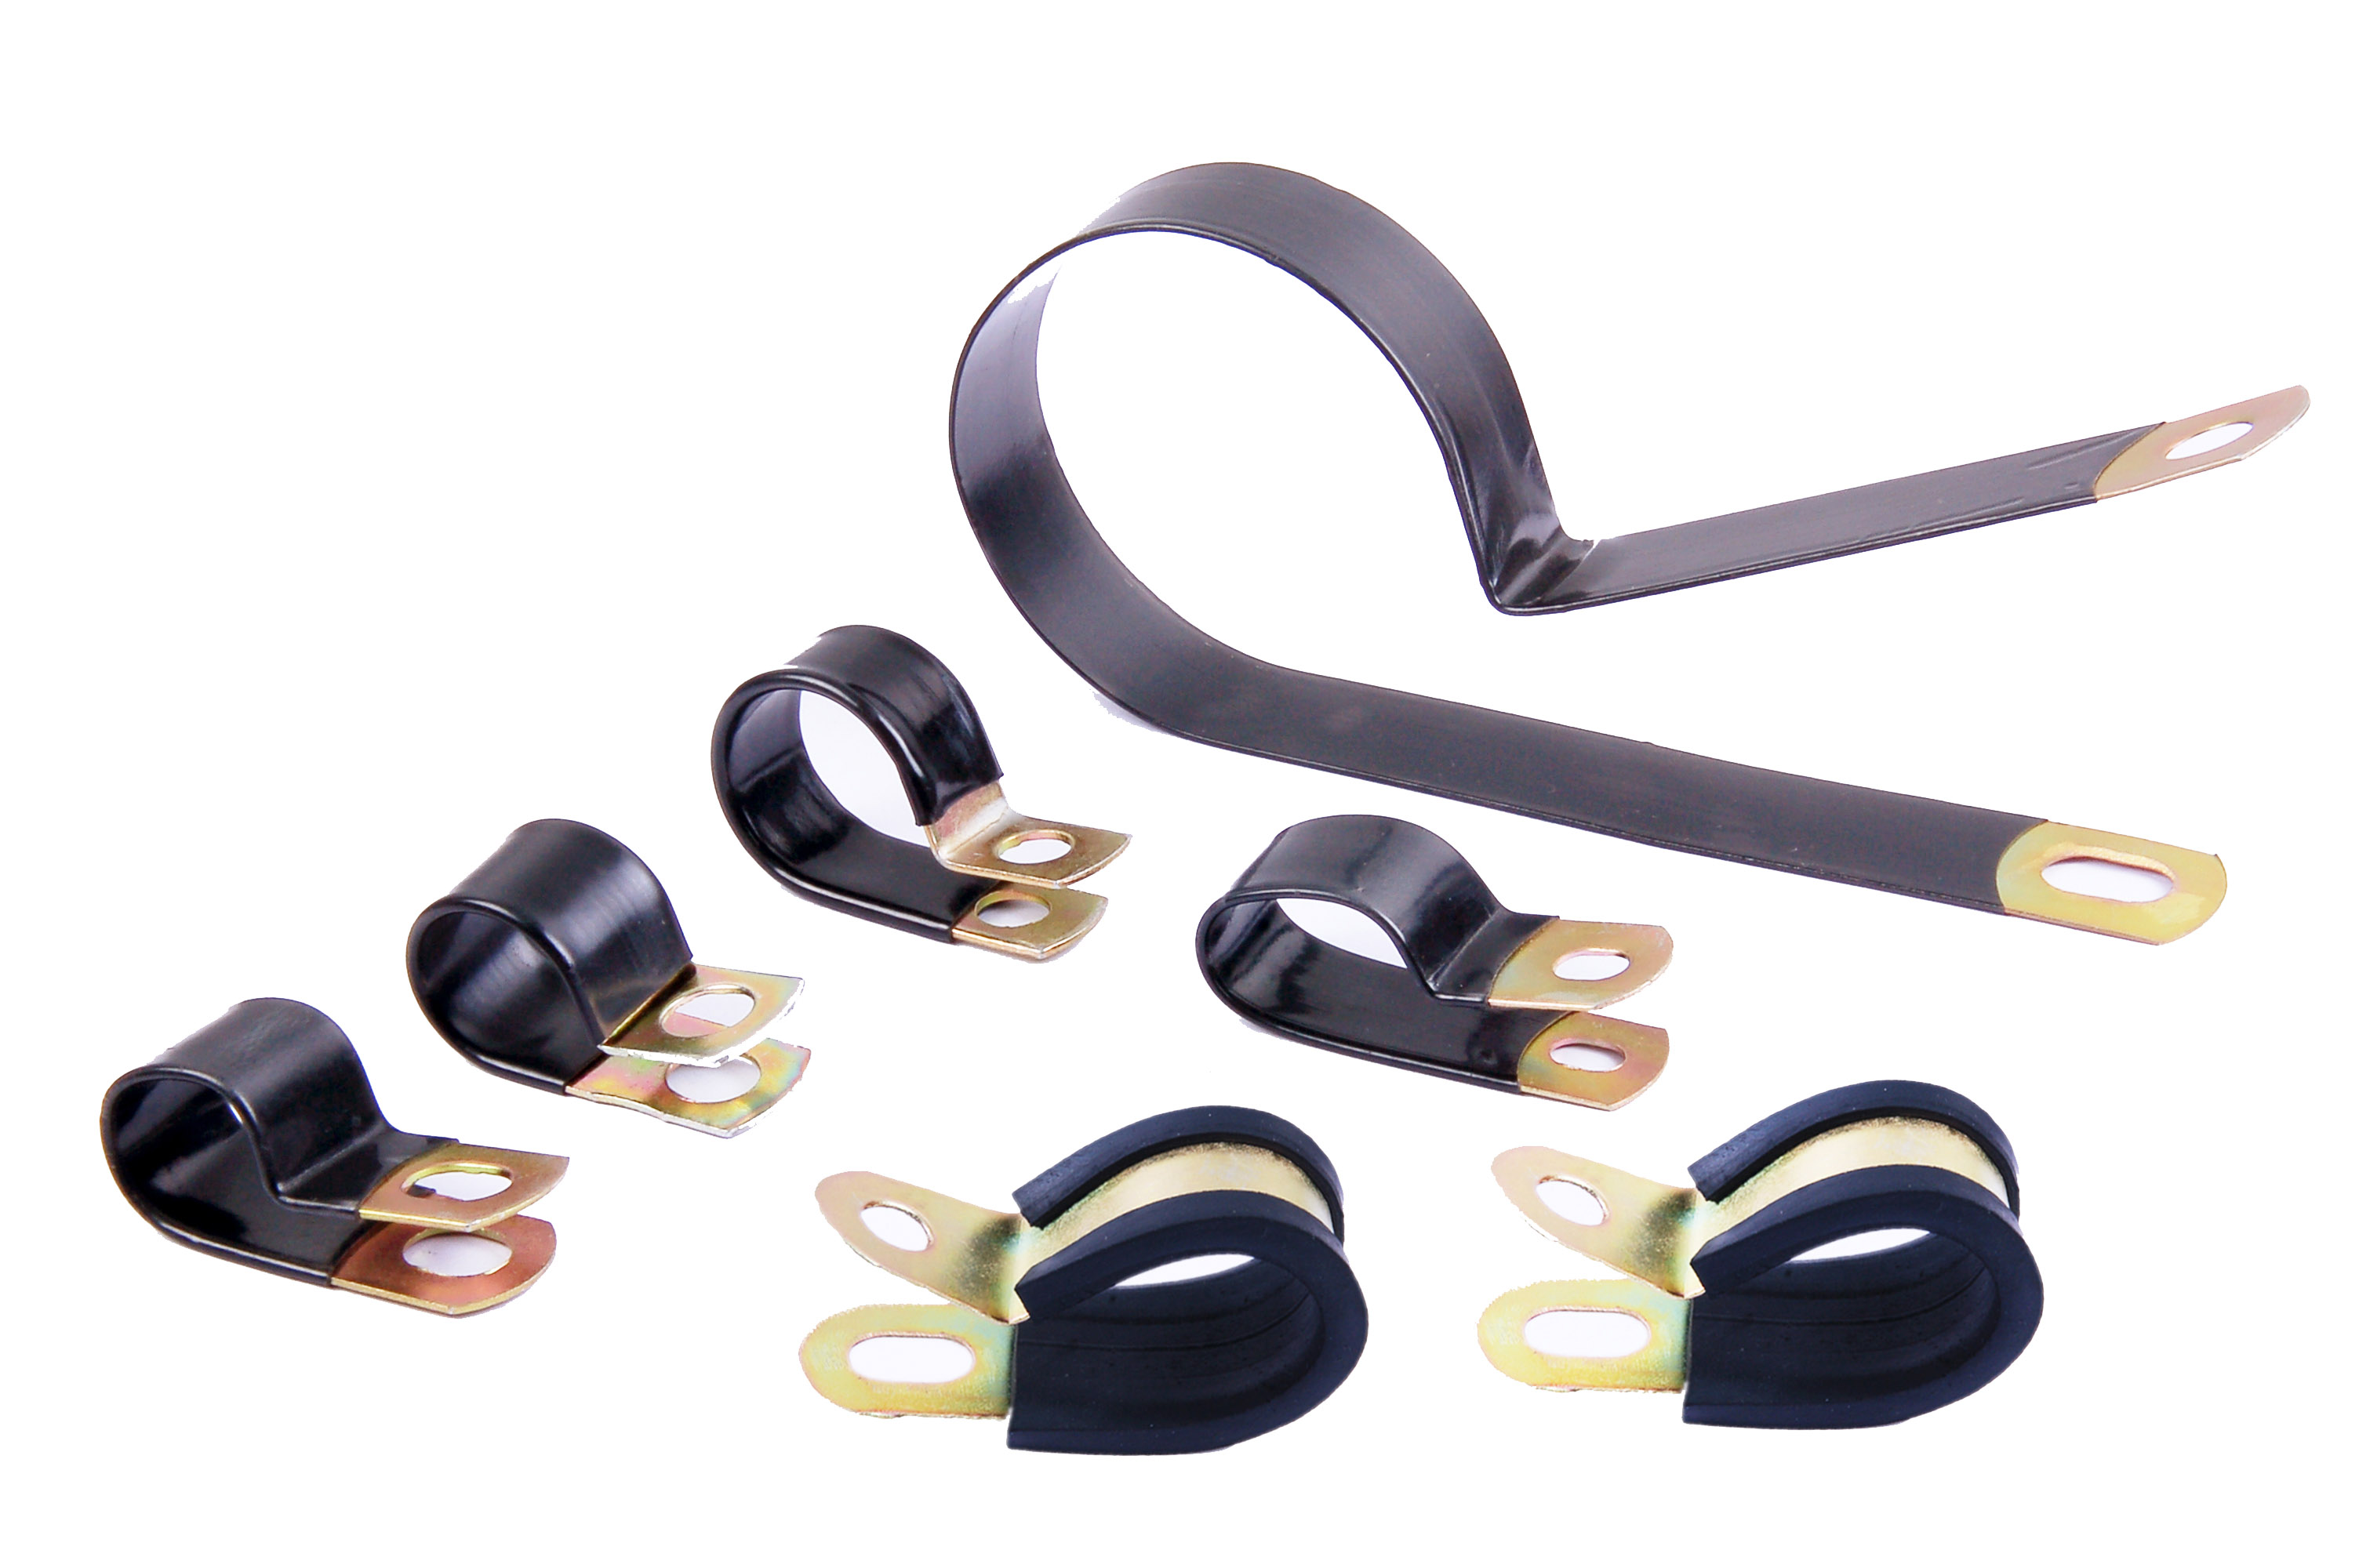 Talco India Nashik Manufacturers Of Washers Fasteners Pressed Wiring Harness Suppliers P Clips Pvc Coated Indianashik